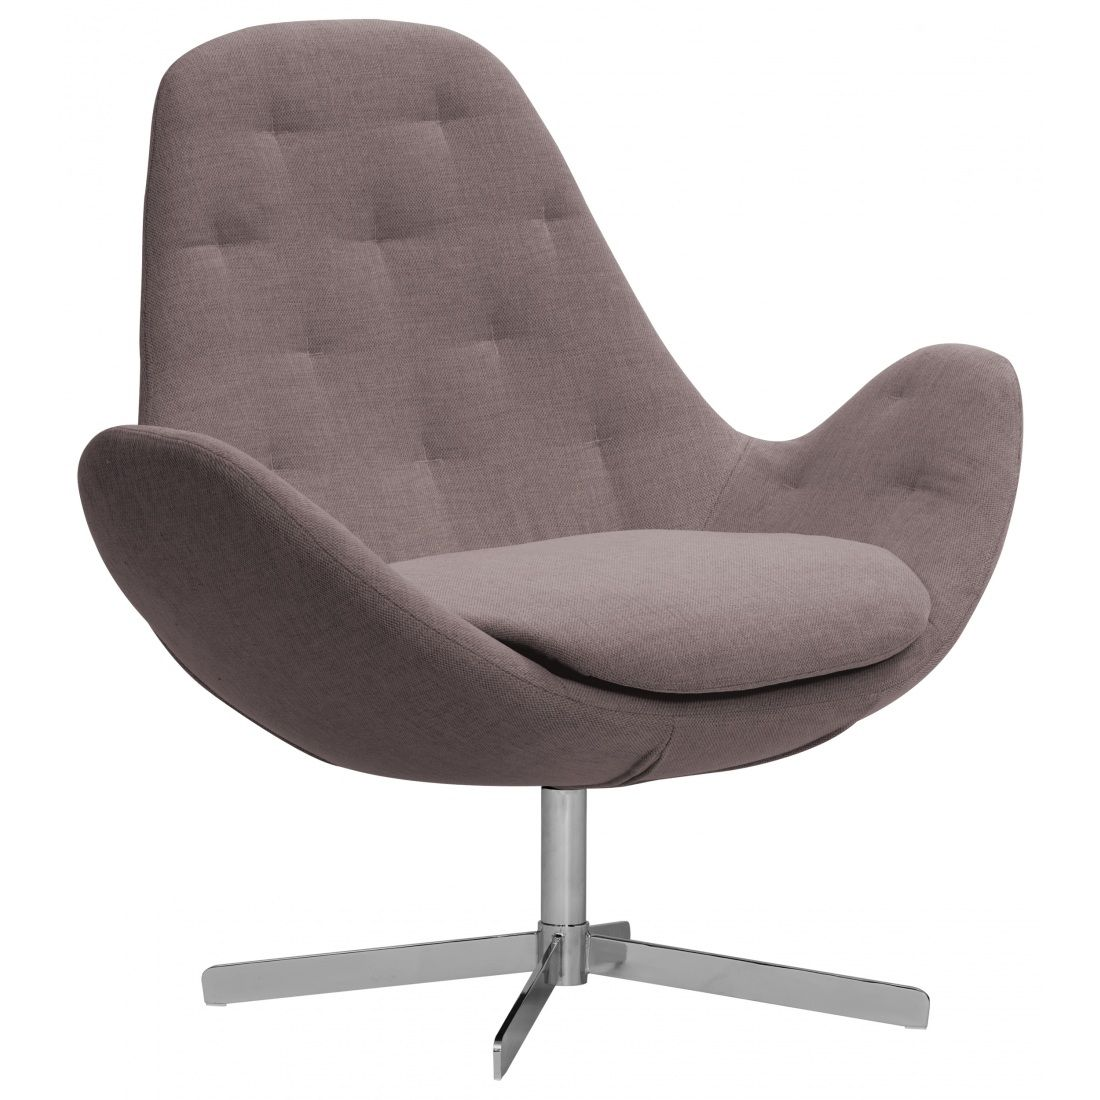 Stressless Consul M Sessel Und Hocker Pin By Milica Grubač On Home Chair Egg Chair Lounge